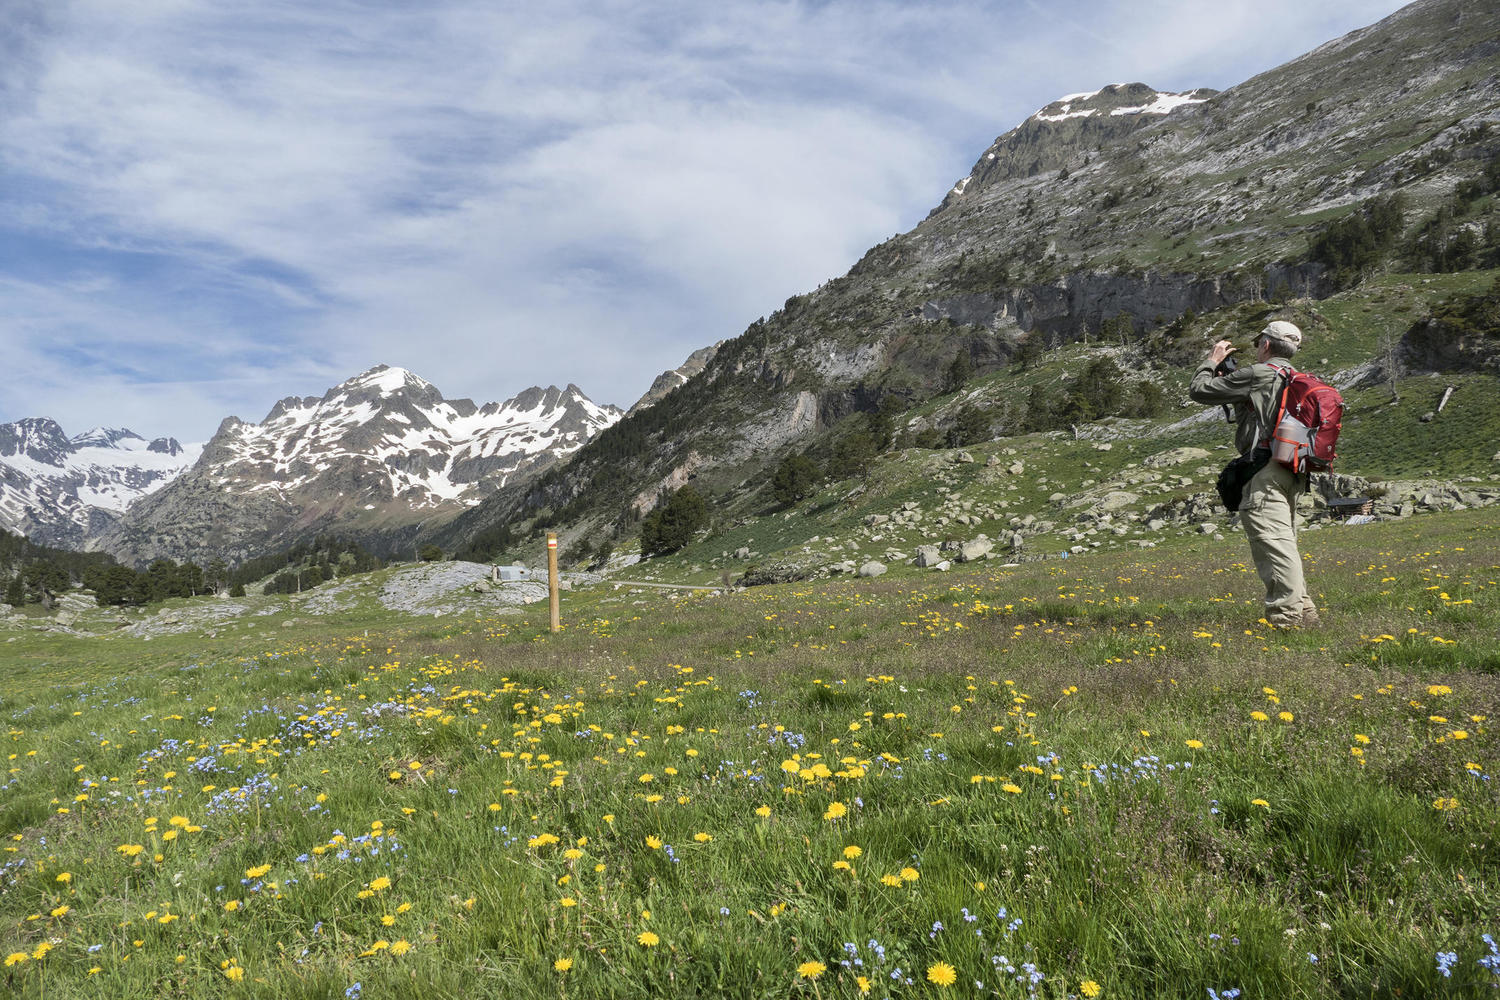 Spring pastures in the high Benasque valley.